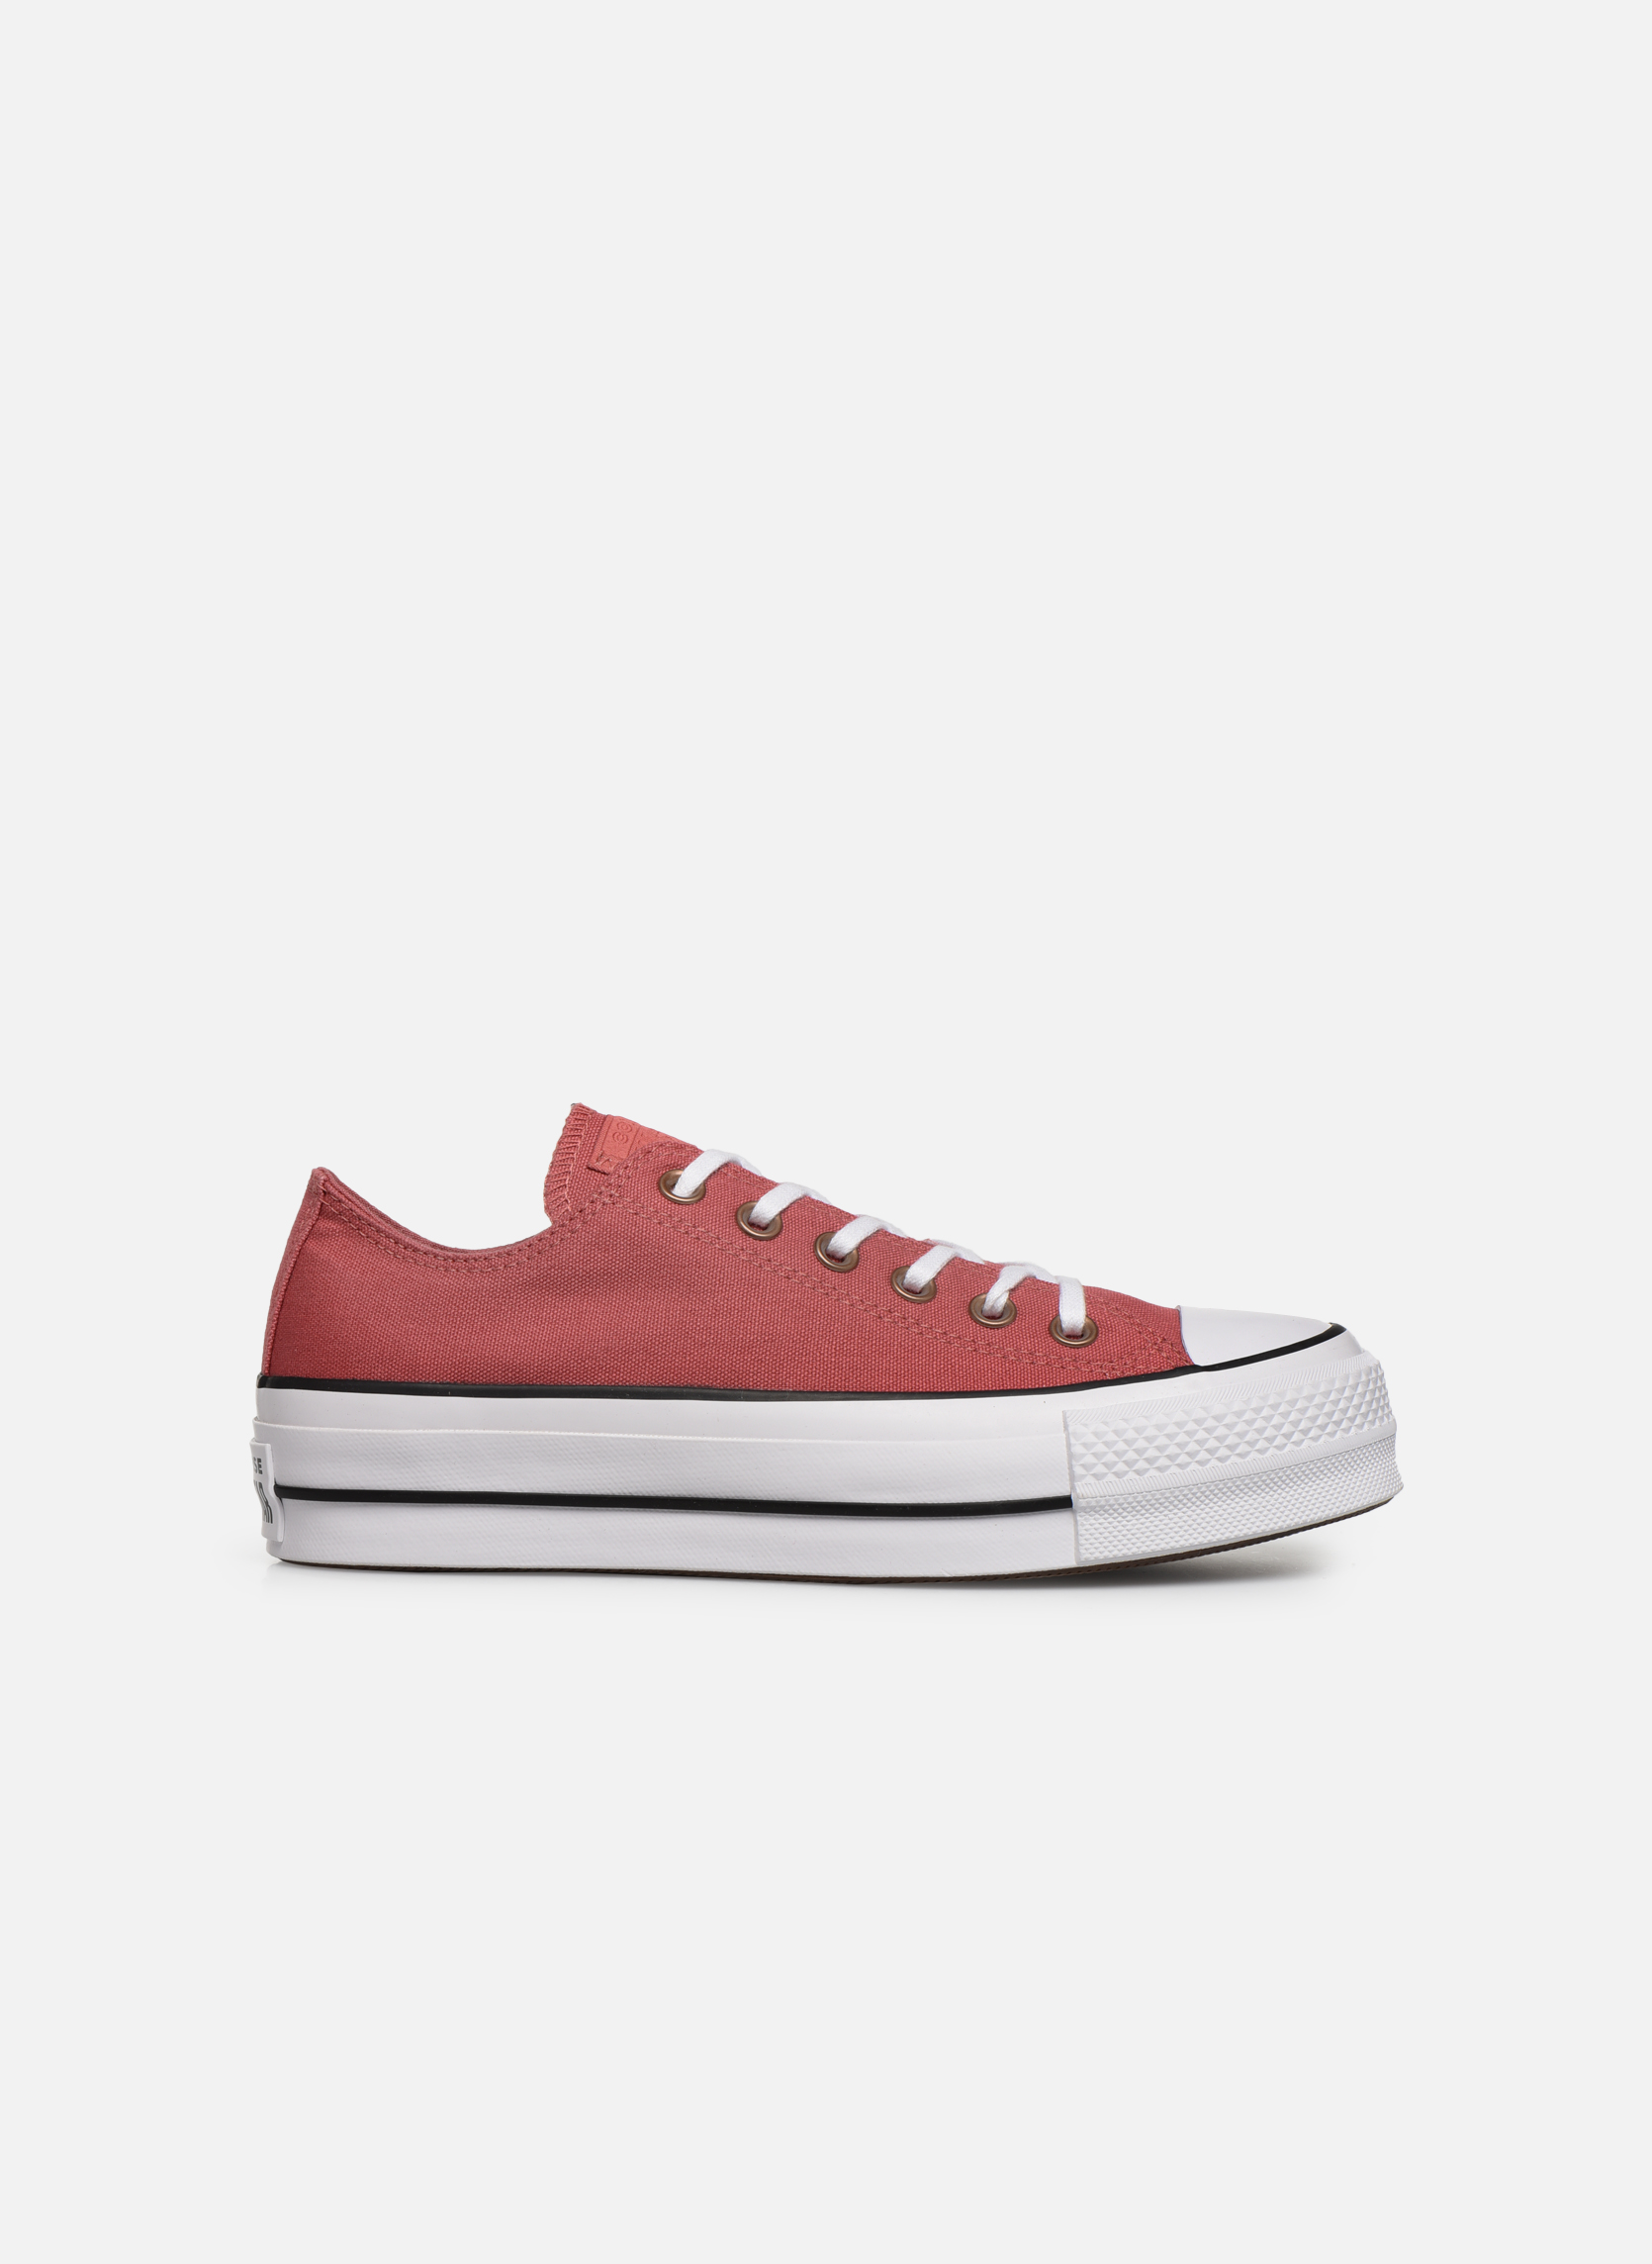 converse canvas ox mujer